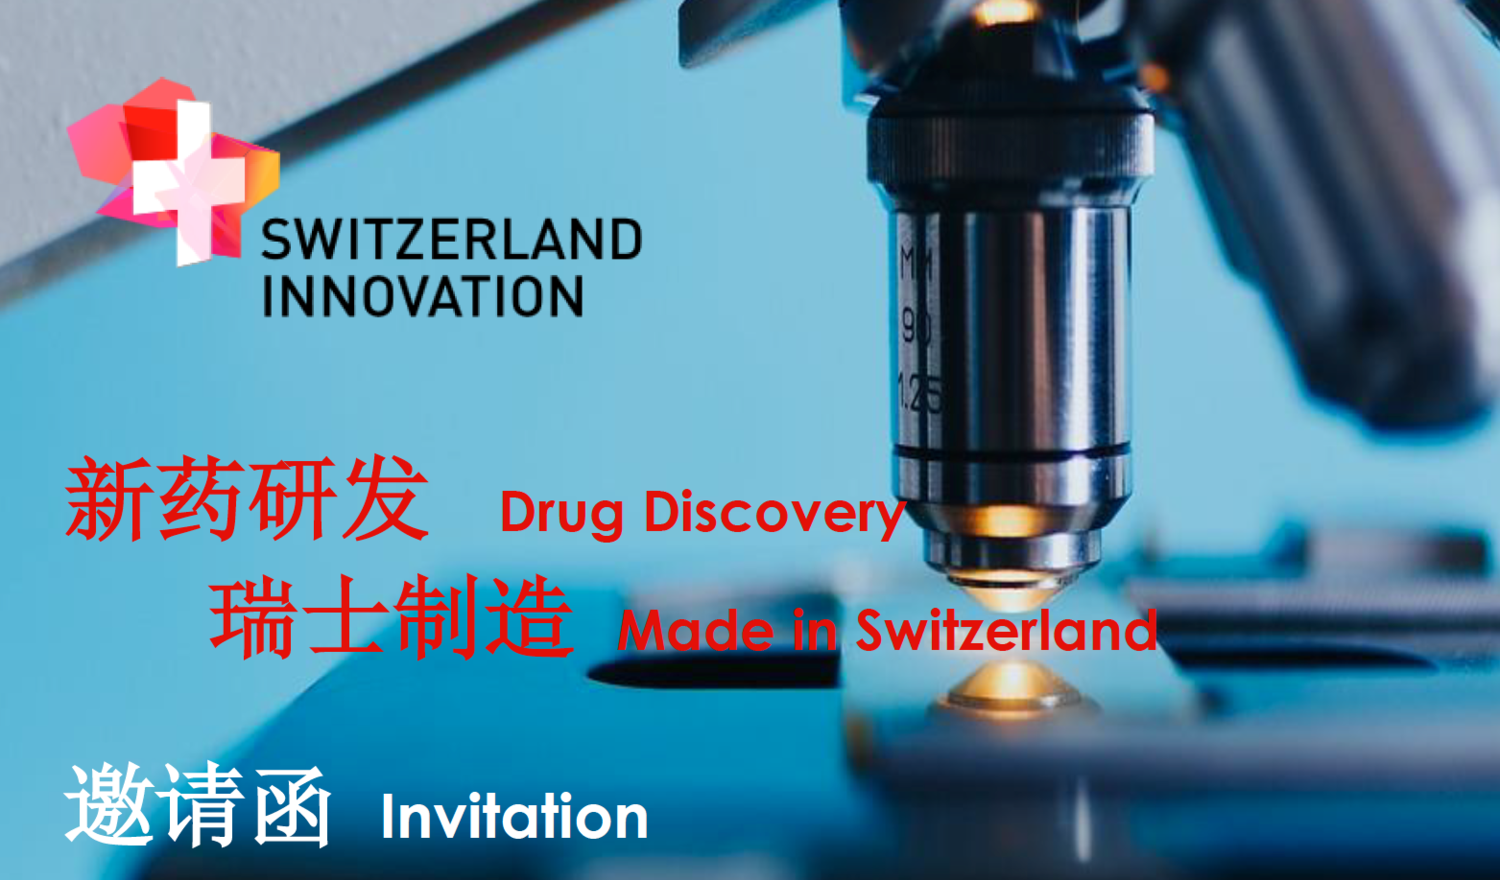 Drug Discovery made in Switzerland